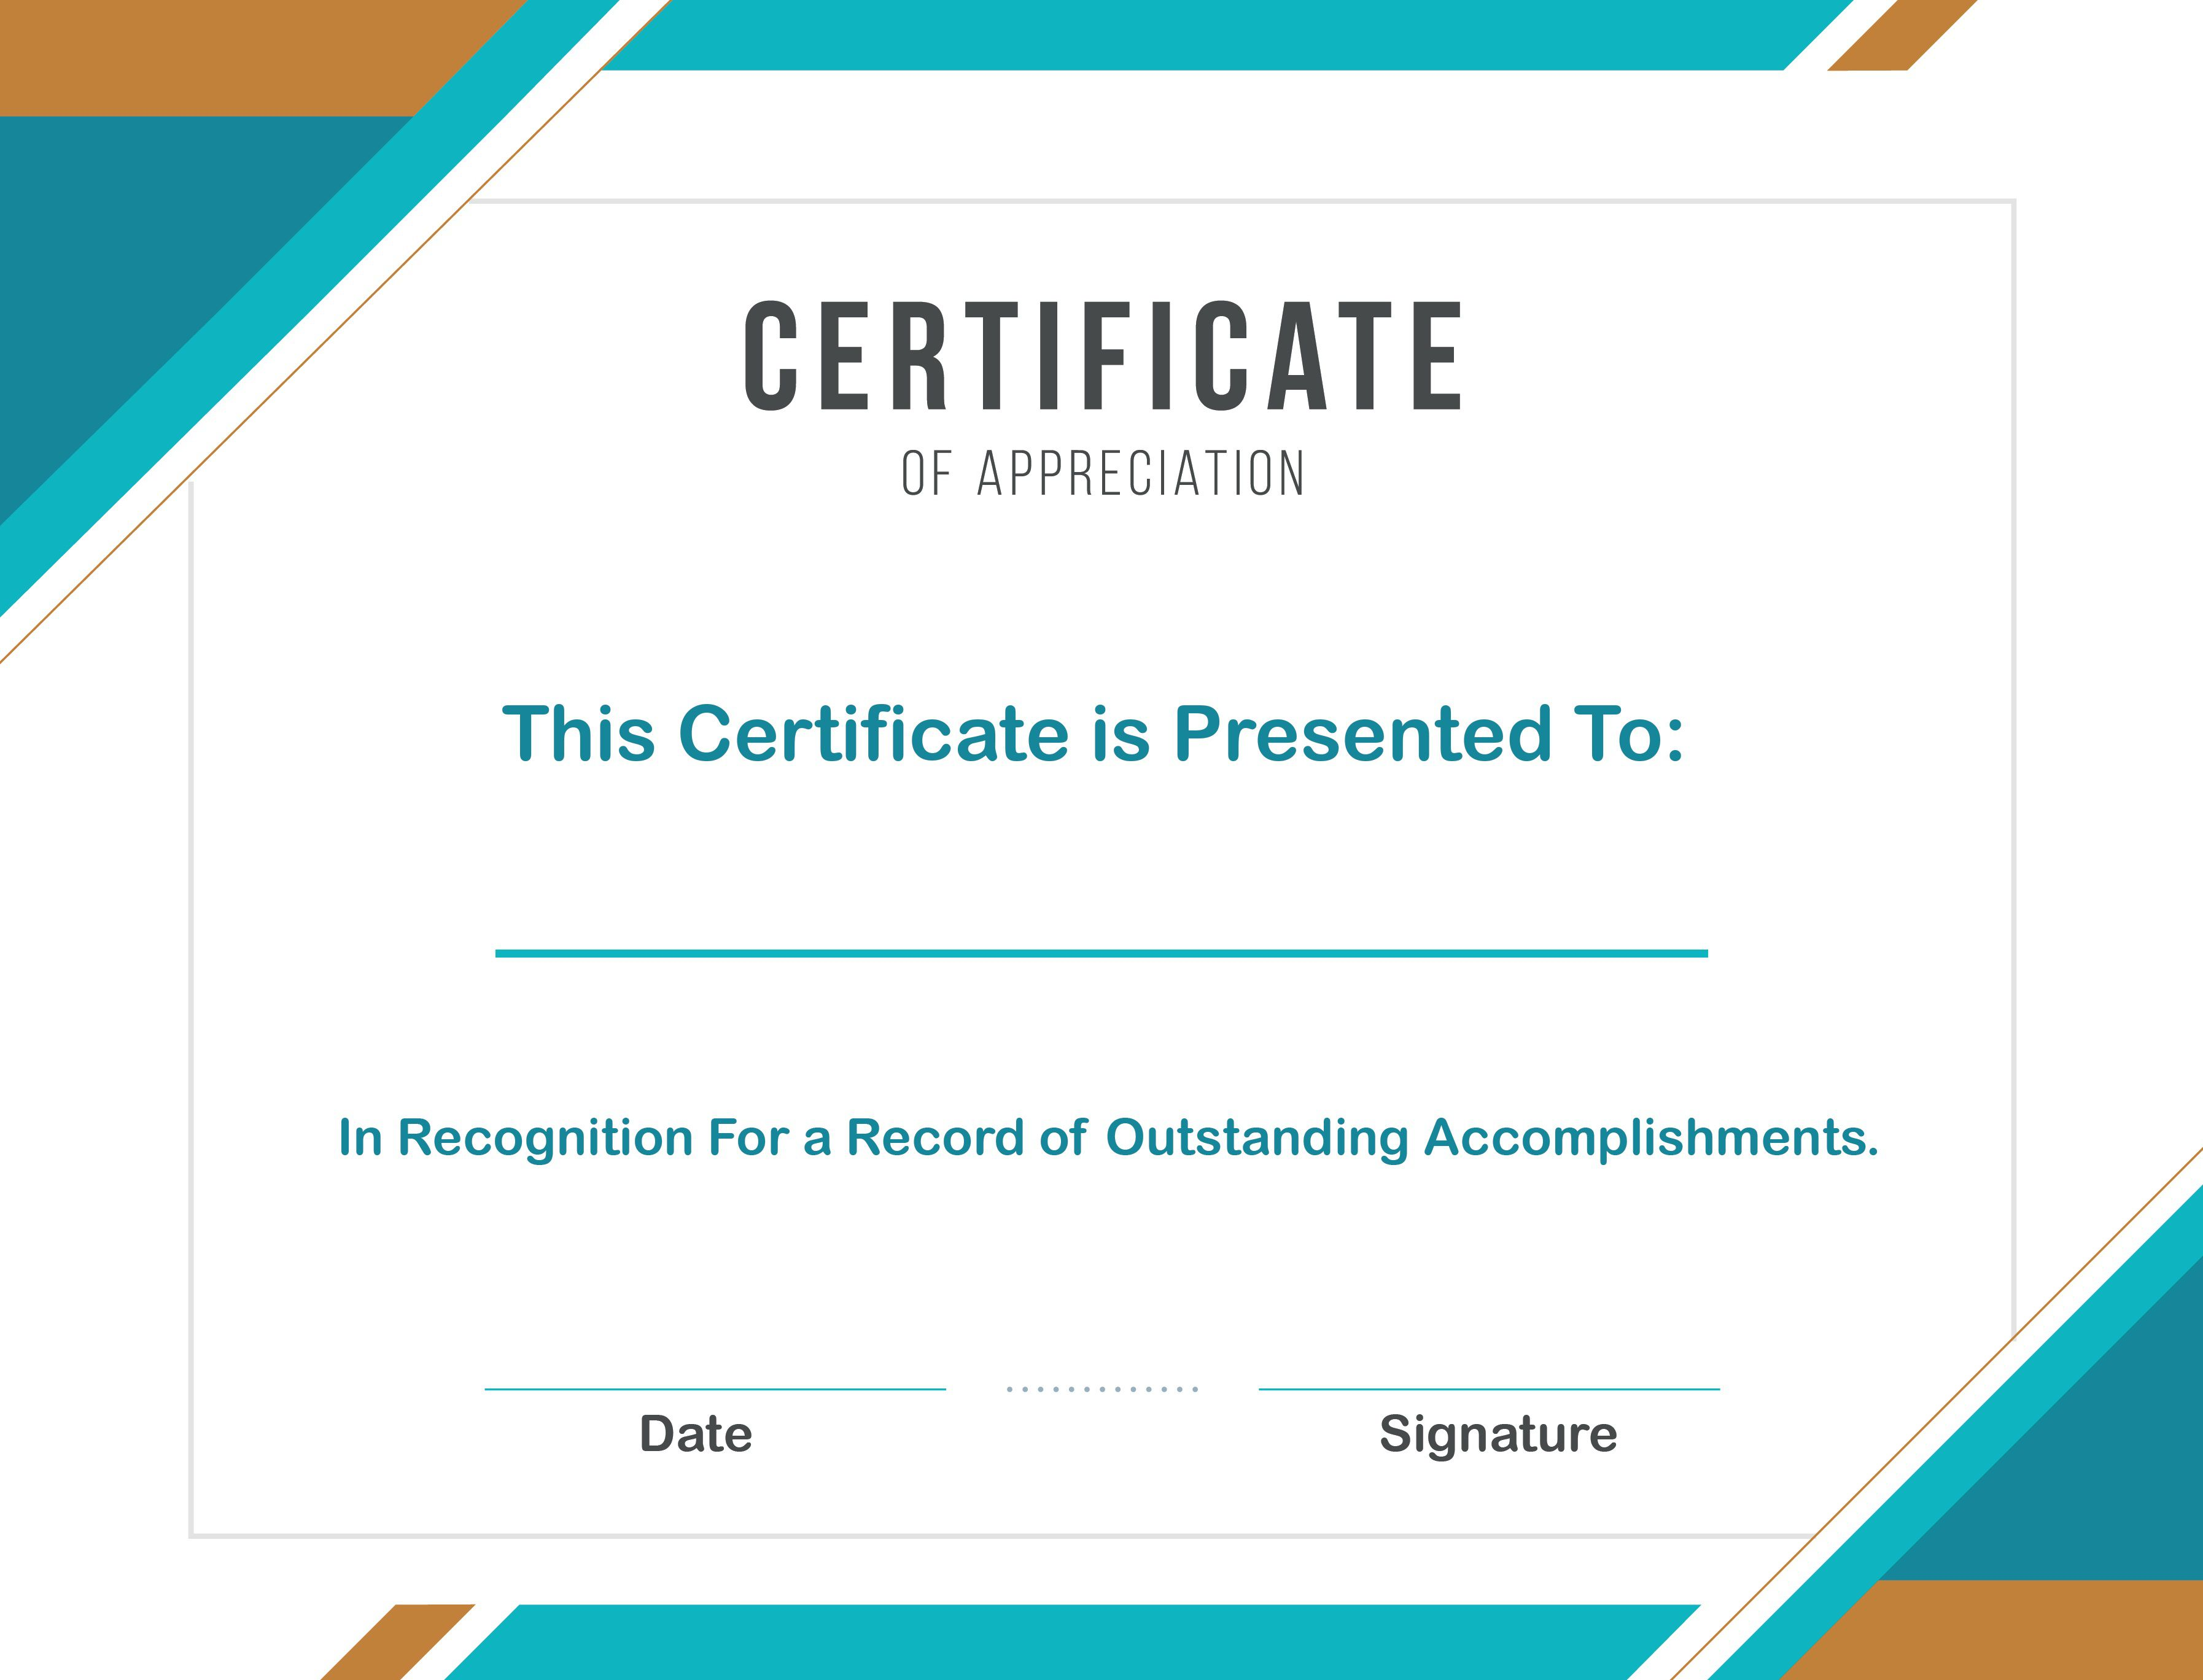 002 Exceptional Free Certificate Template Word Photo  Blank For Microsoft Award Border DownloadFull